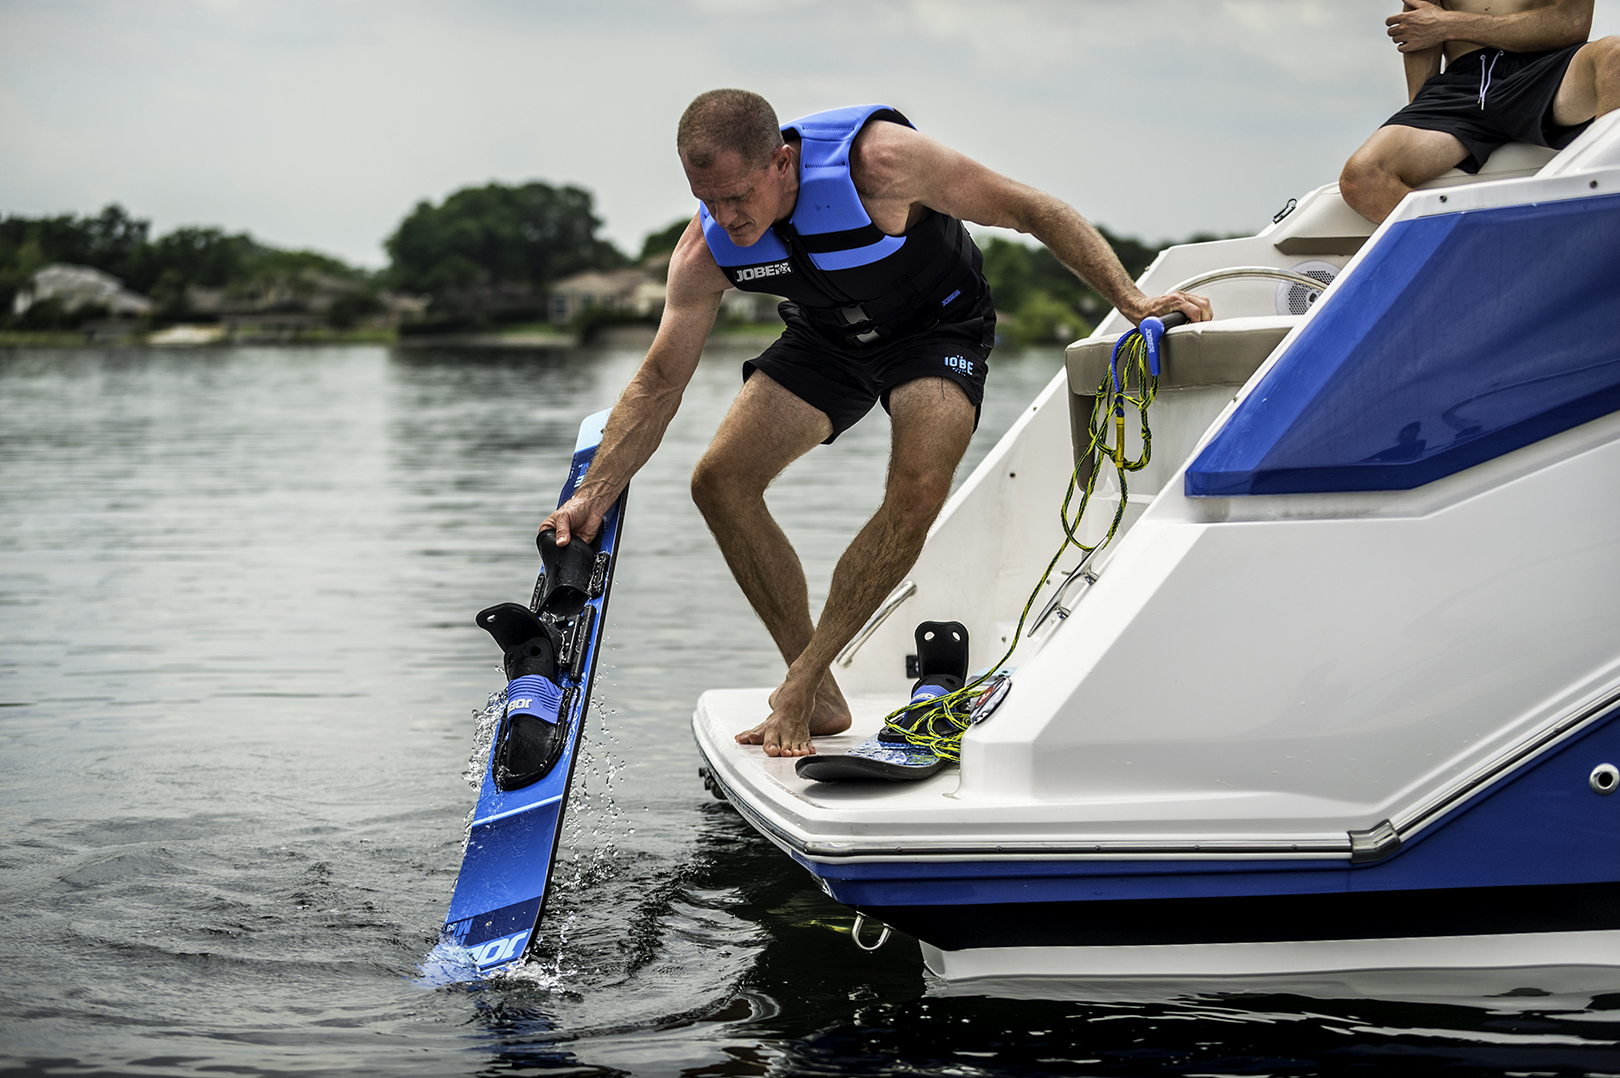 How-to-ski: The fundamentals of waterski